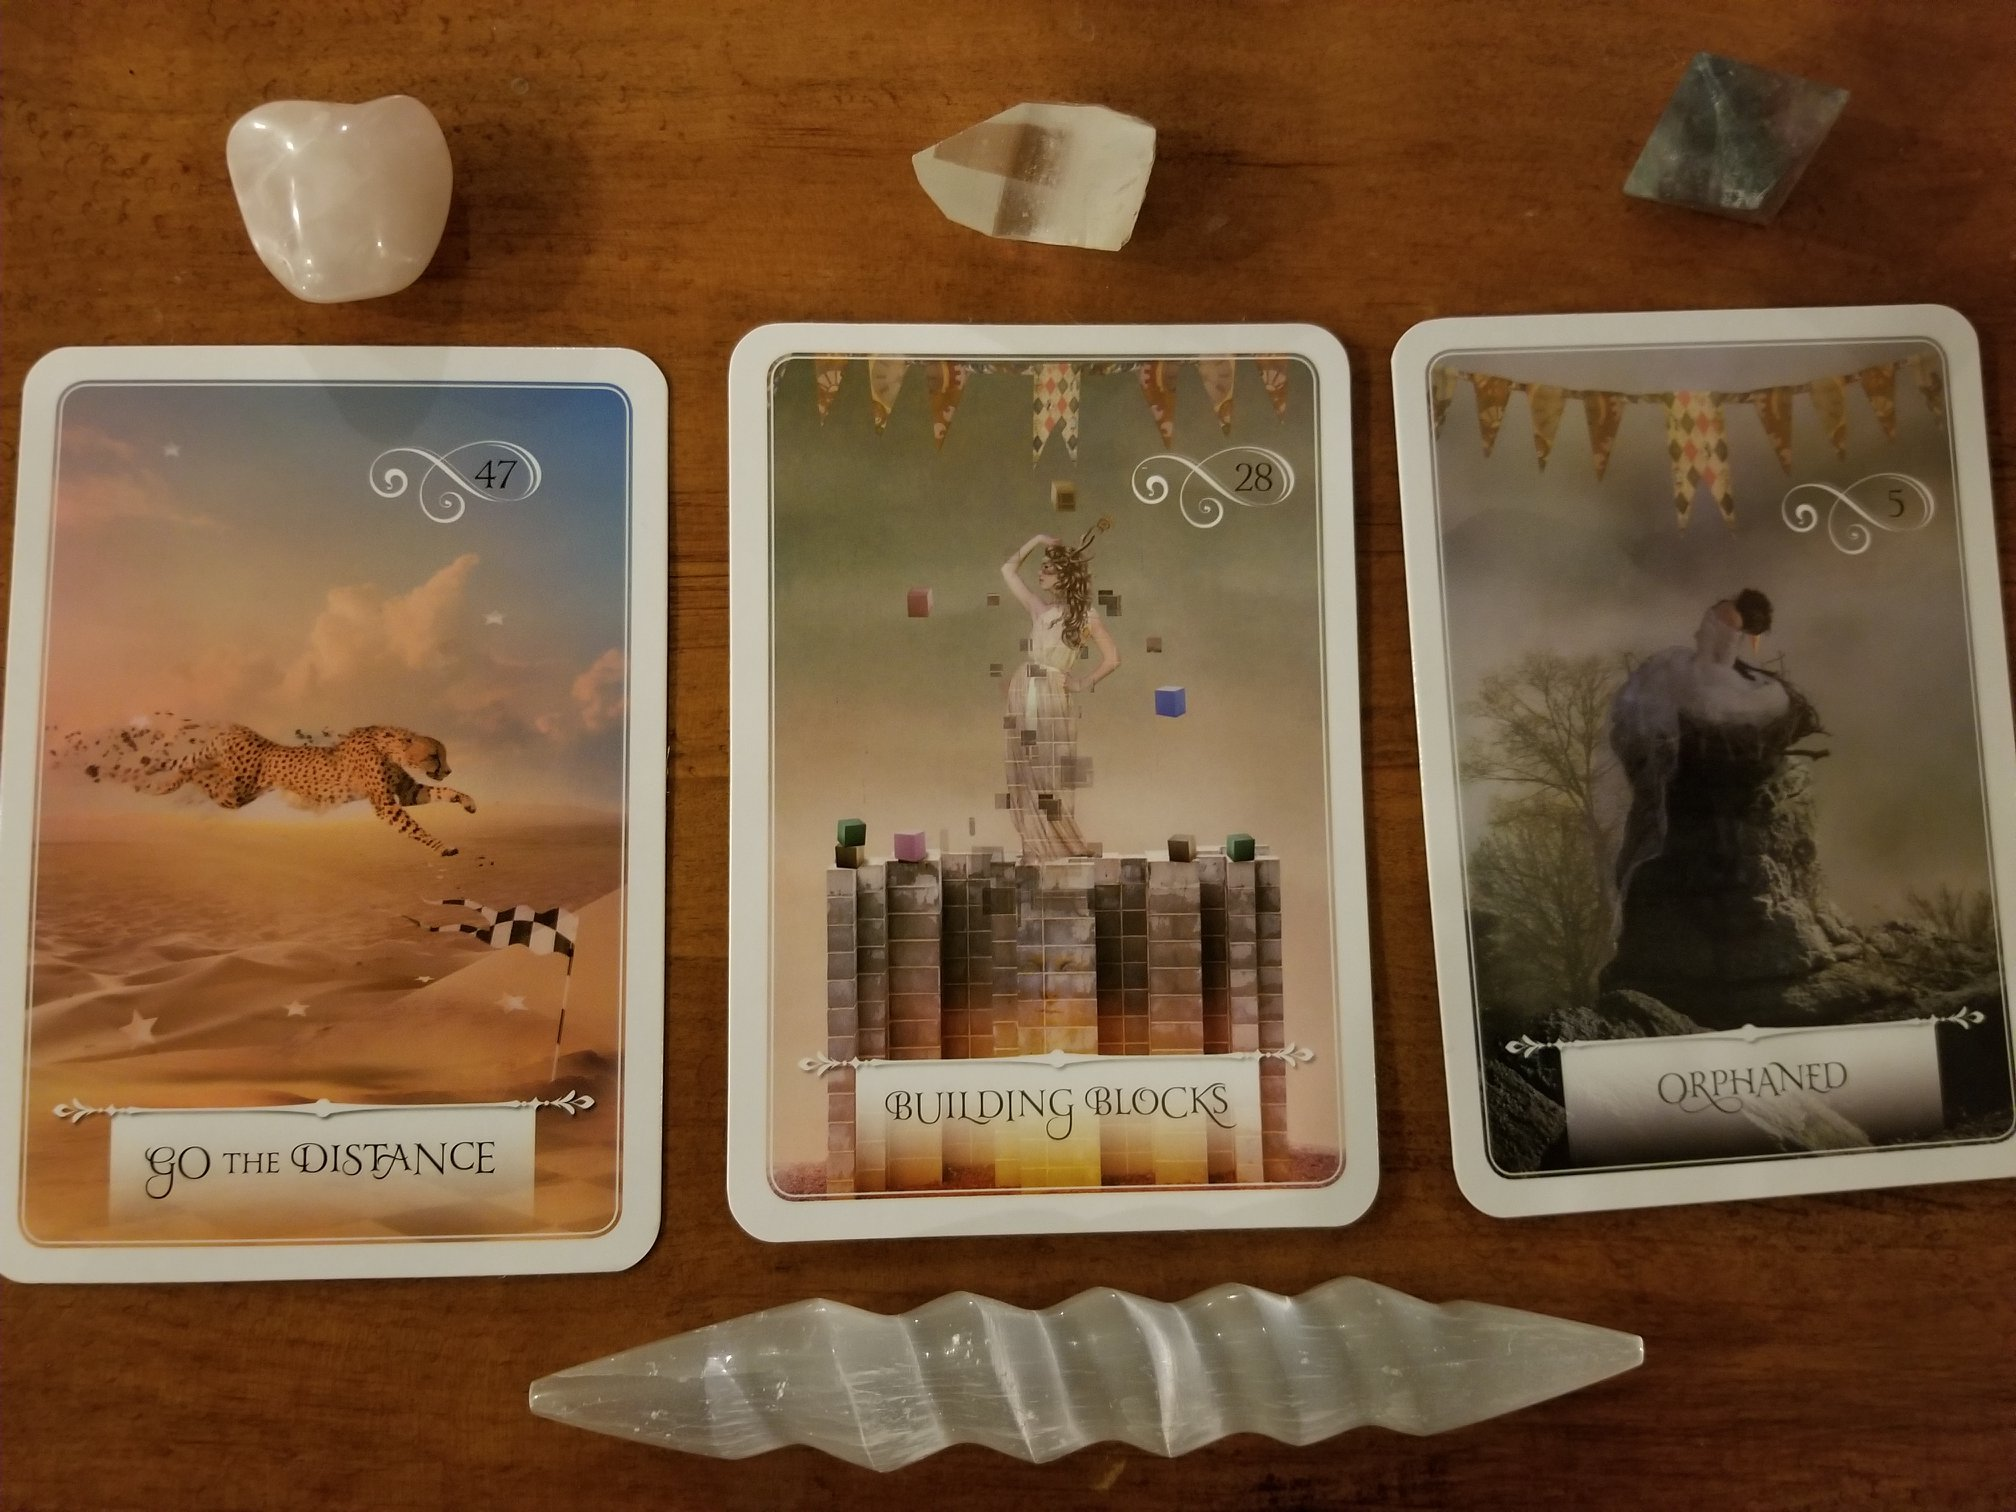 Oracle Monday 1/29/18 REVEALED - Go the Distance, Building Blocks, Orphaned